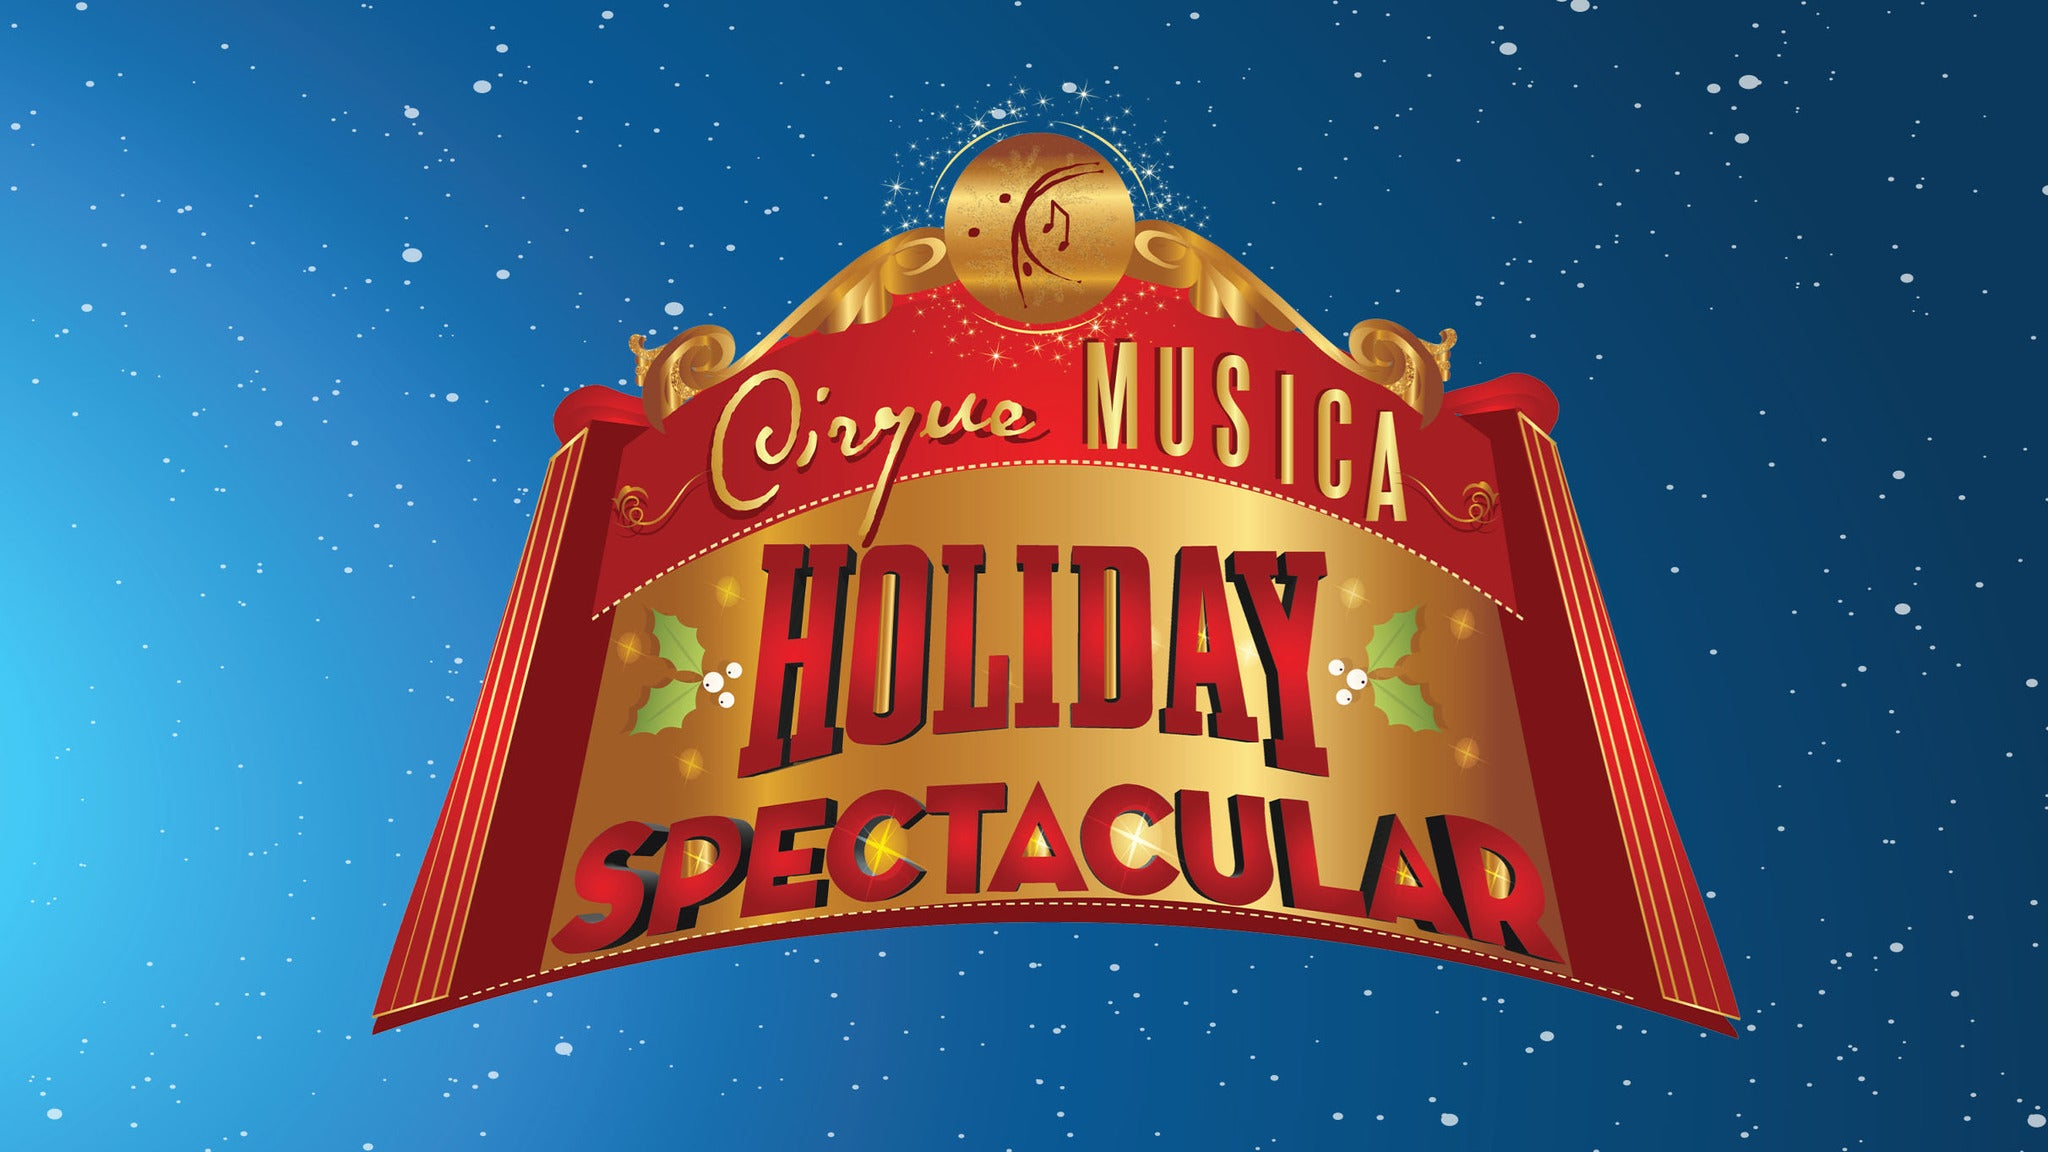 Cirque Musica Holiday Spectacular pre-sale password for show tickets in Denver, CO (Paramount Theatre)